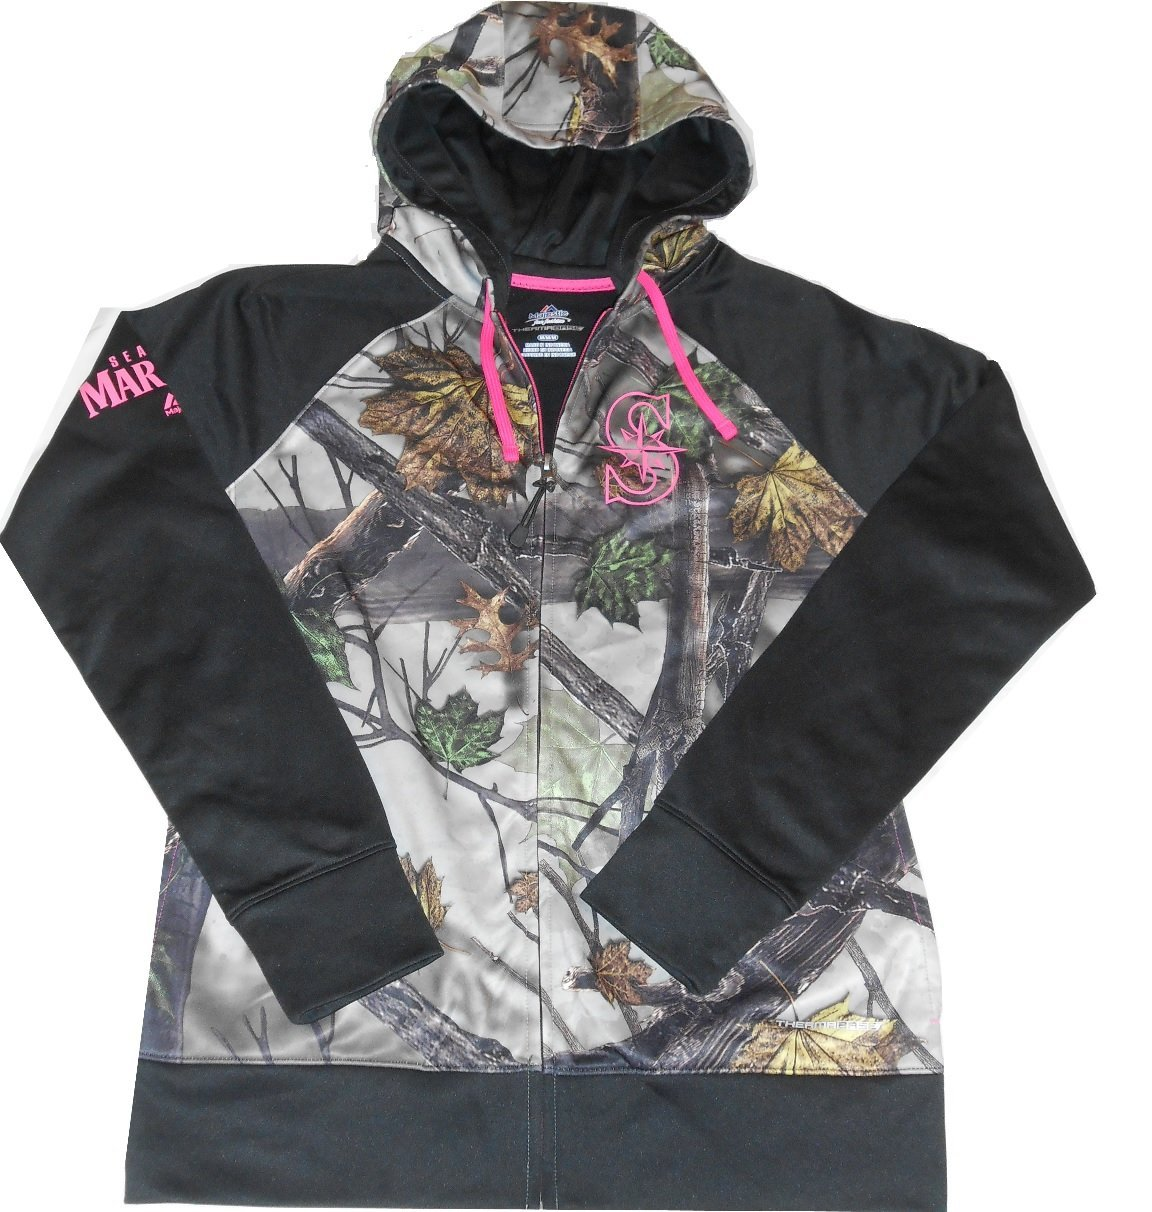 Seattle Mariners Majestic MLB Women's THERMABASE Real Tree Camo / Pink Hoodie Sweatshirt Size Medium